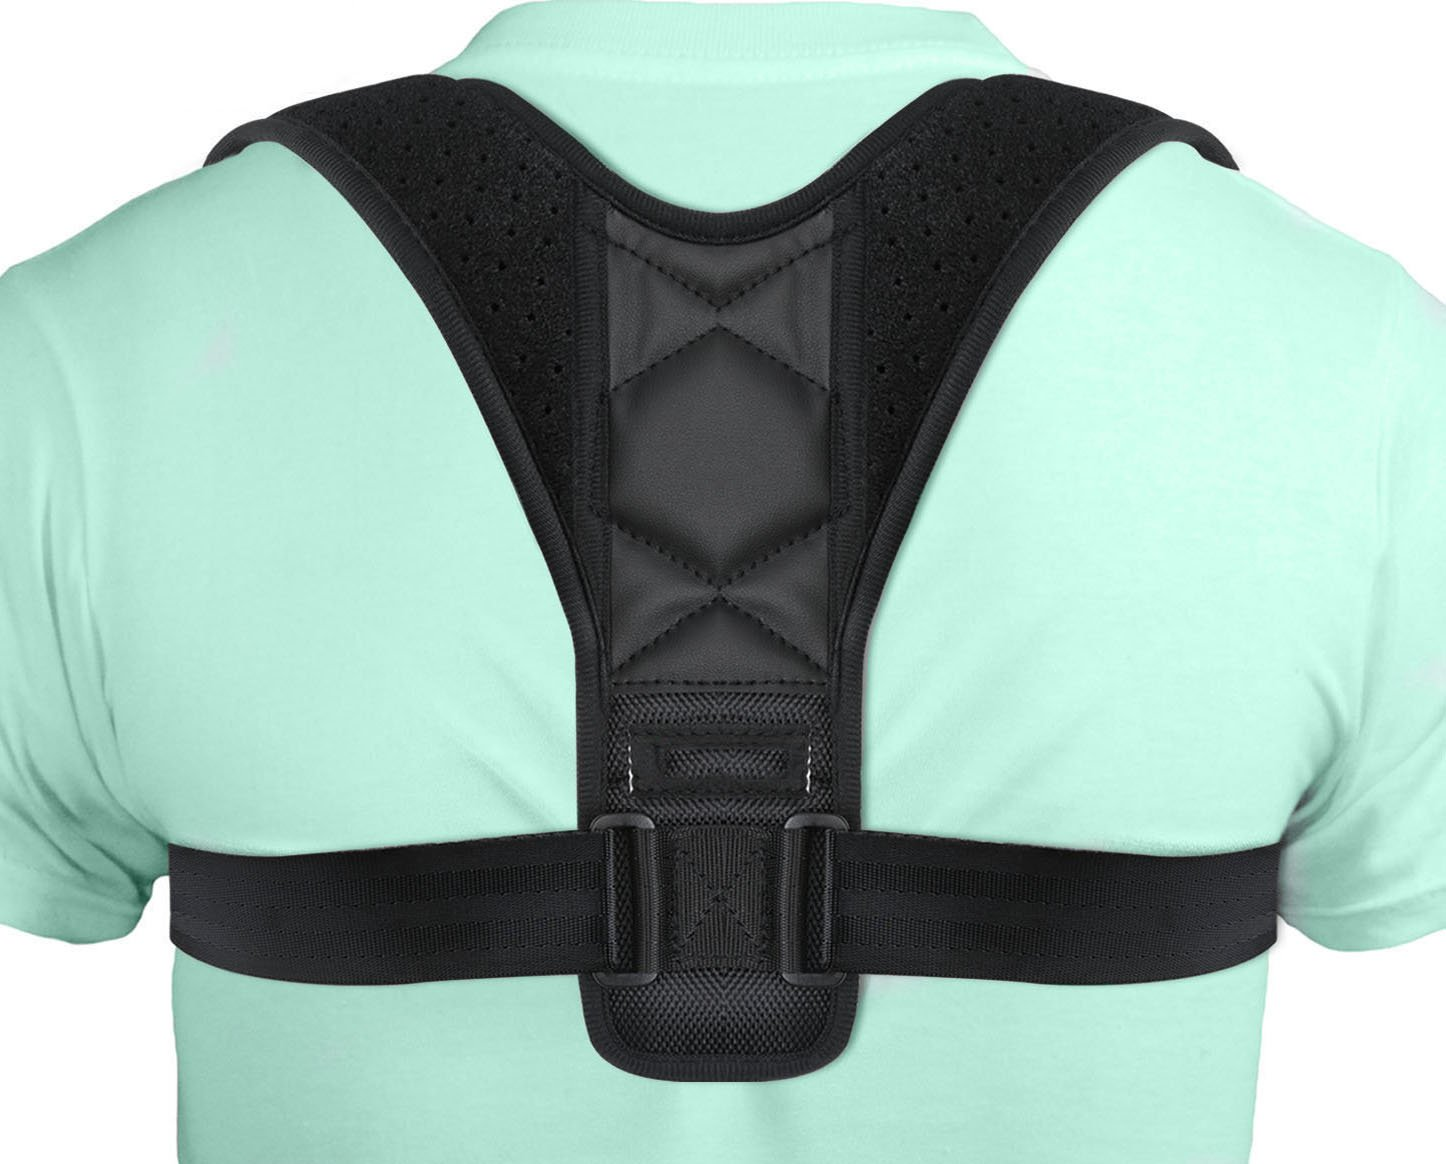 Back Posture Corrector, Hersvin Shoulder Back Straightener Brace Trainer Clavicle Chest Support to Improve Slouching and Hunching, Postural Problems, Relieve Neck Pain for Women Men Teenagers Adults